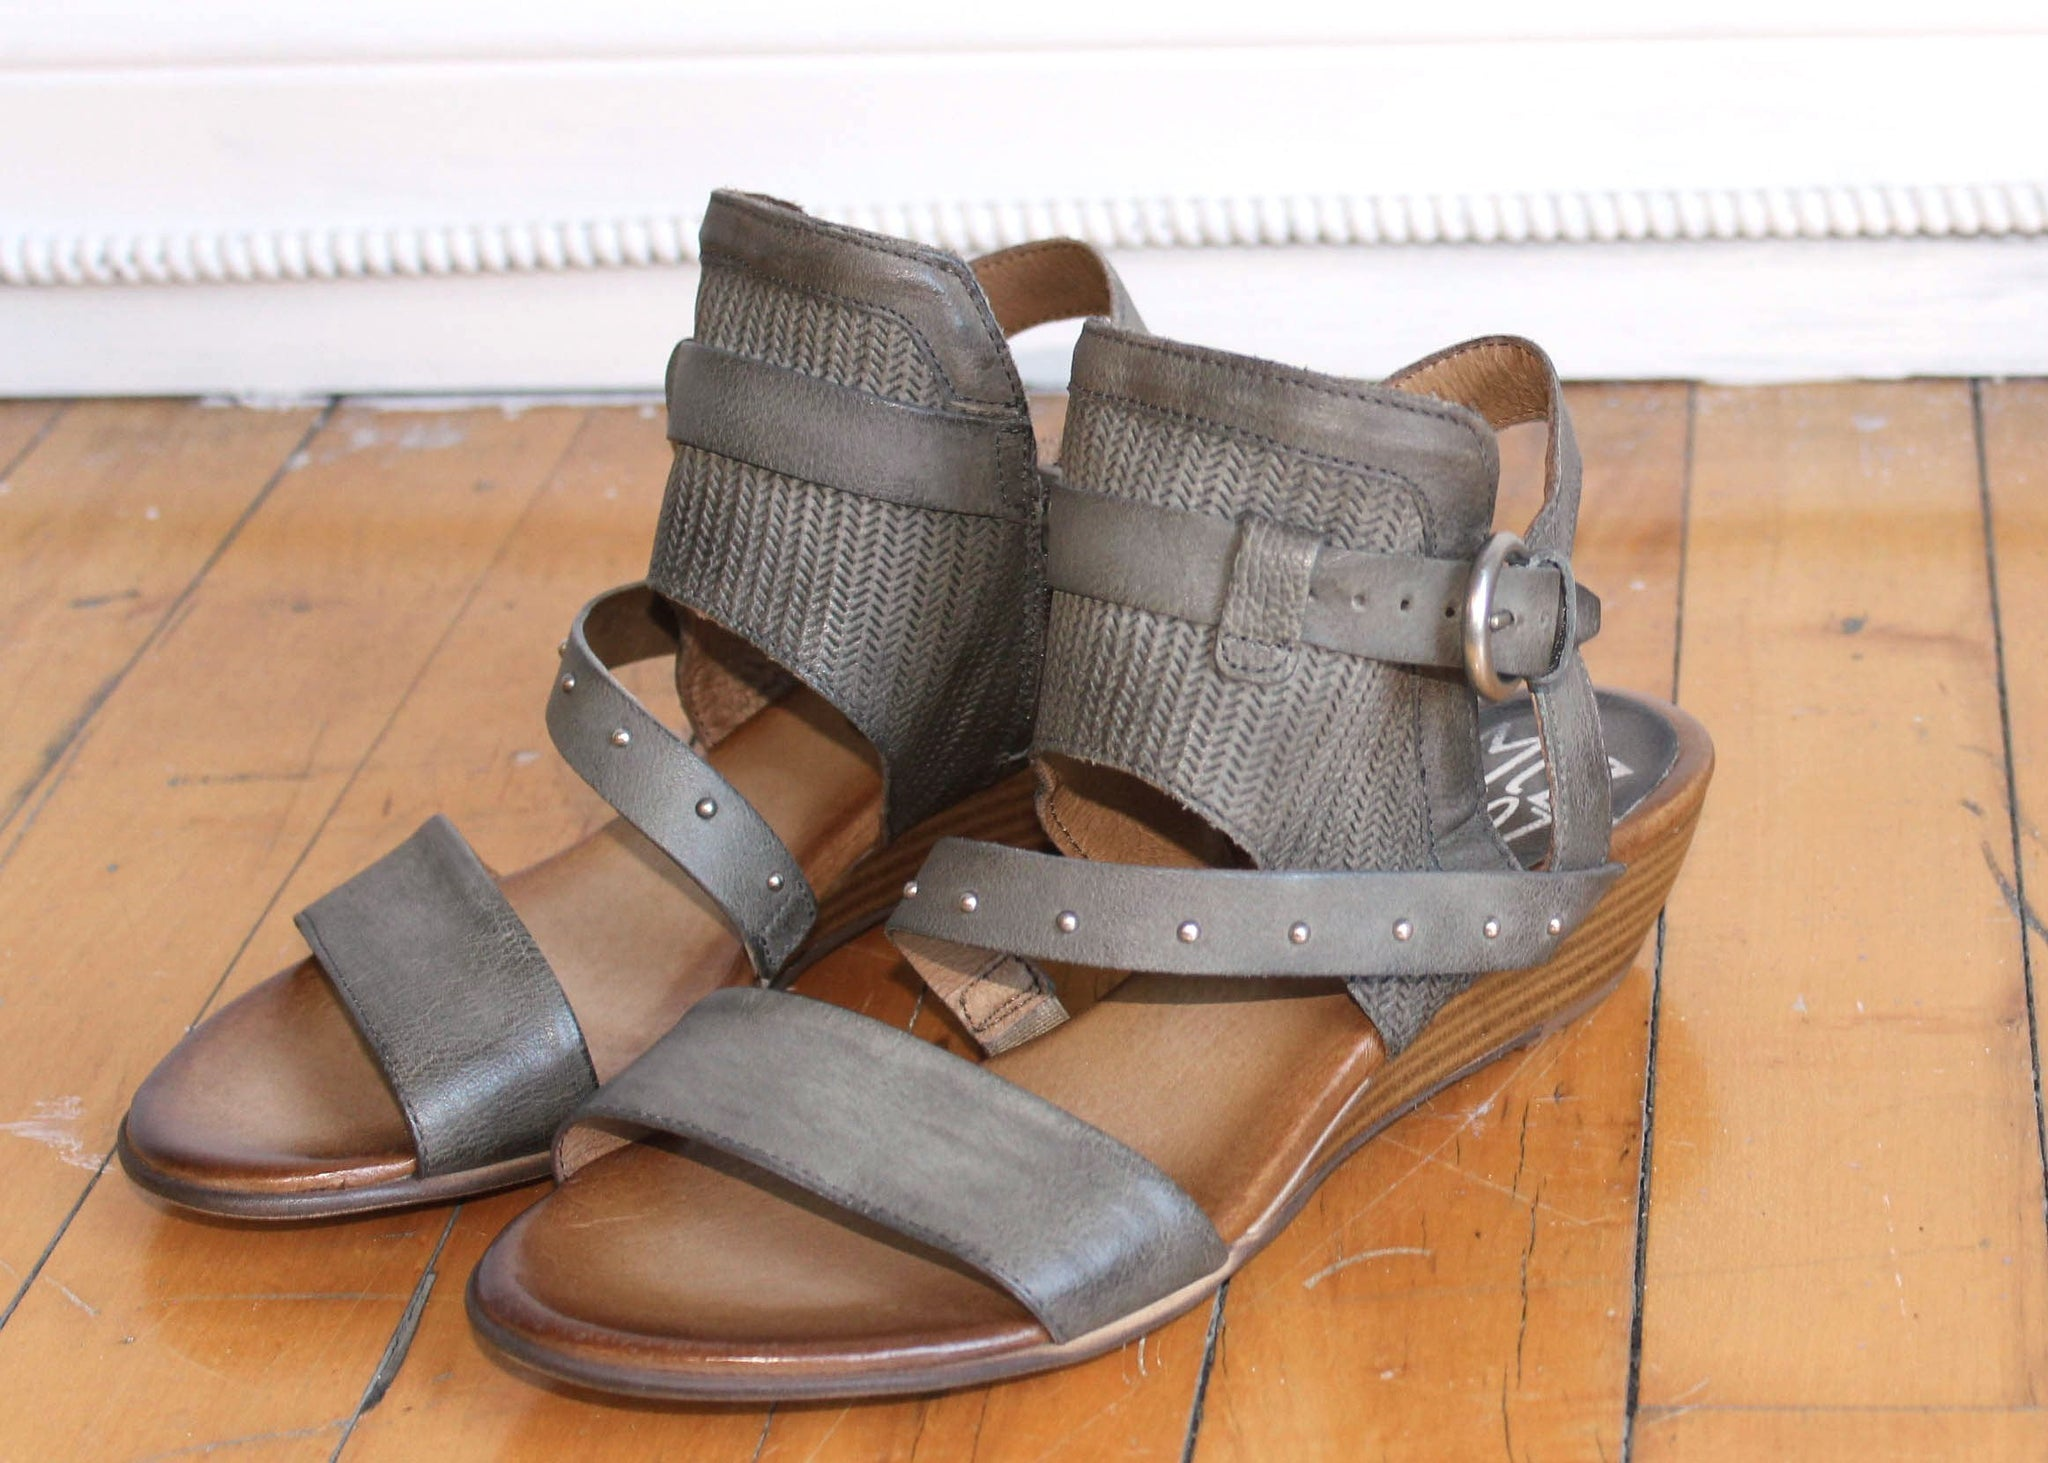 0db61a7e9 Farley - Rooster Shoes